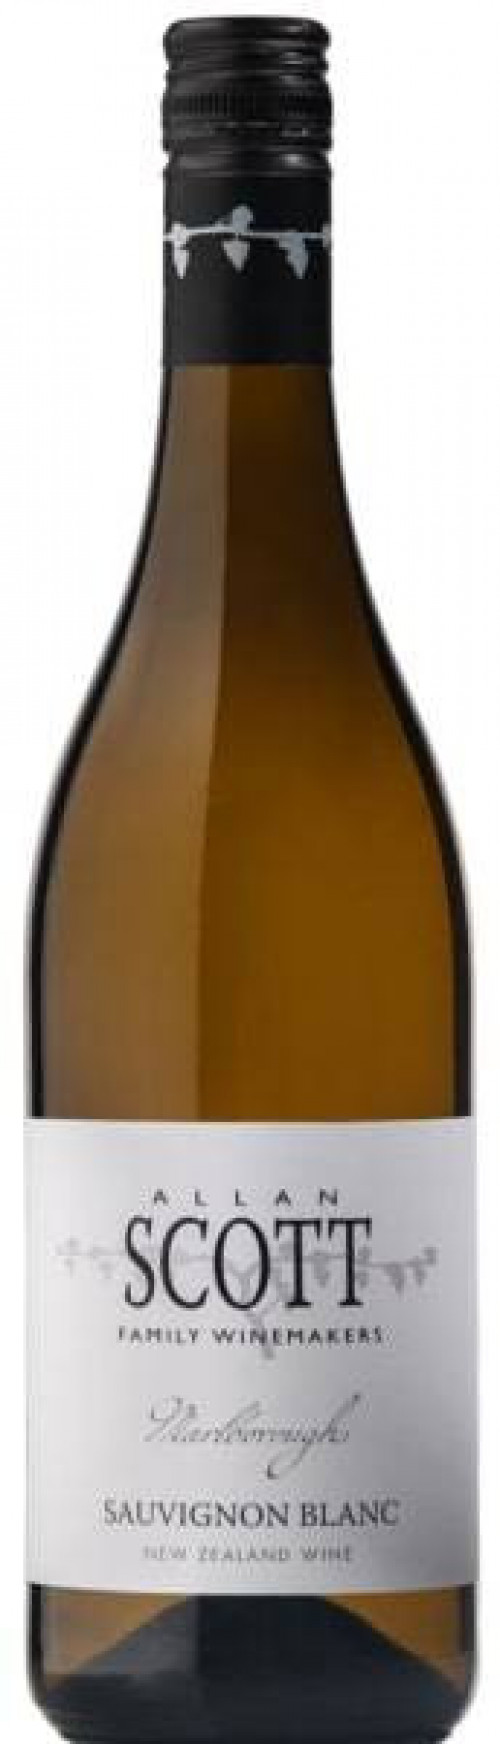 Allan Scott Sauvignon Blanc 750ml